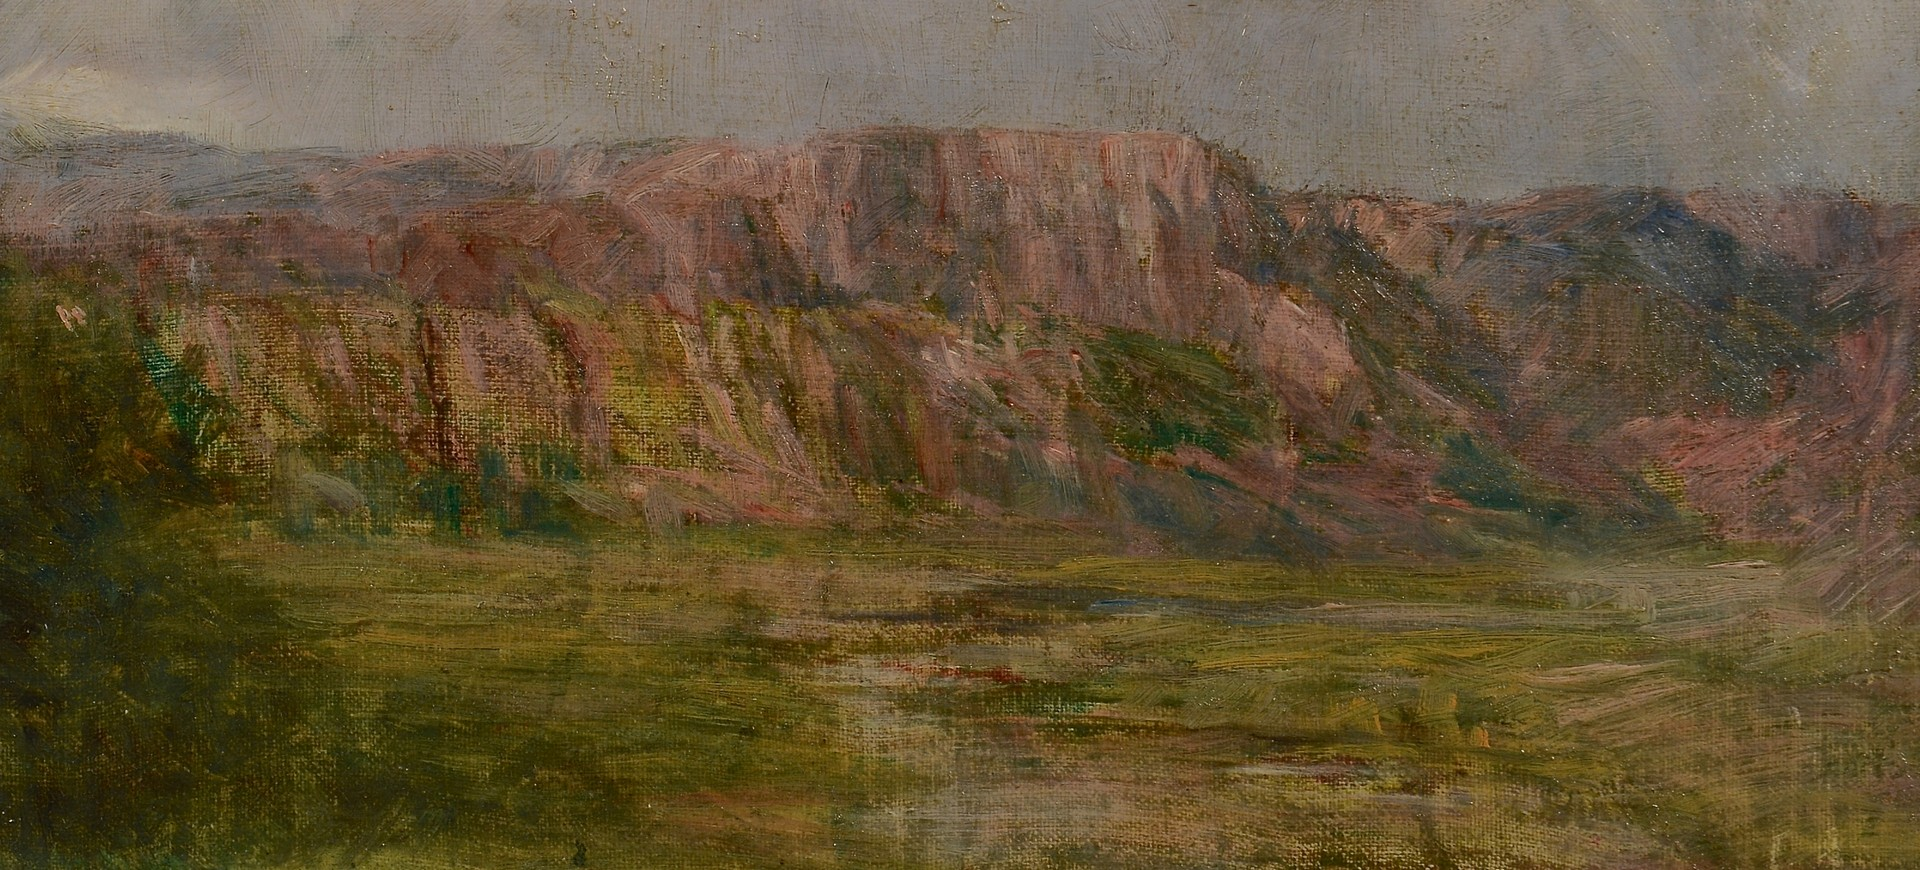 Lot 250: Oil on Board Landscape, Willison